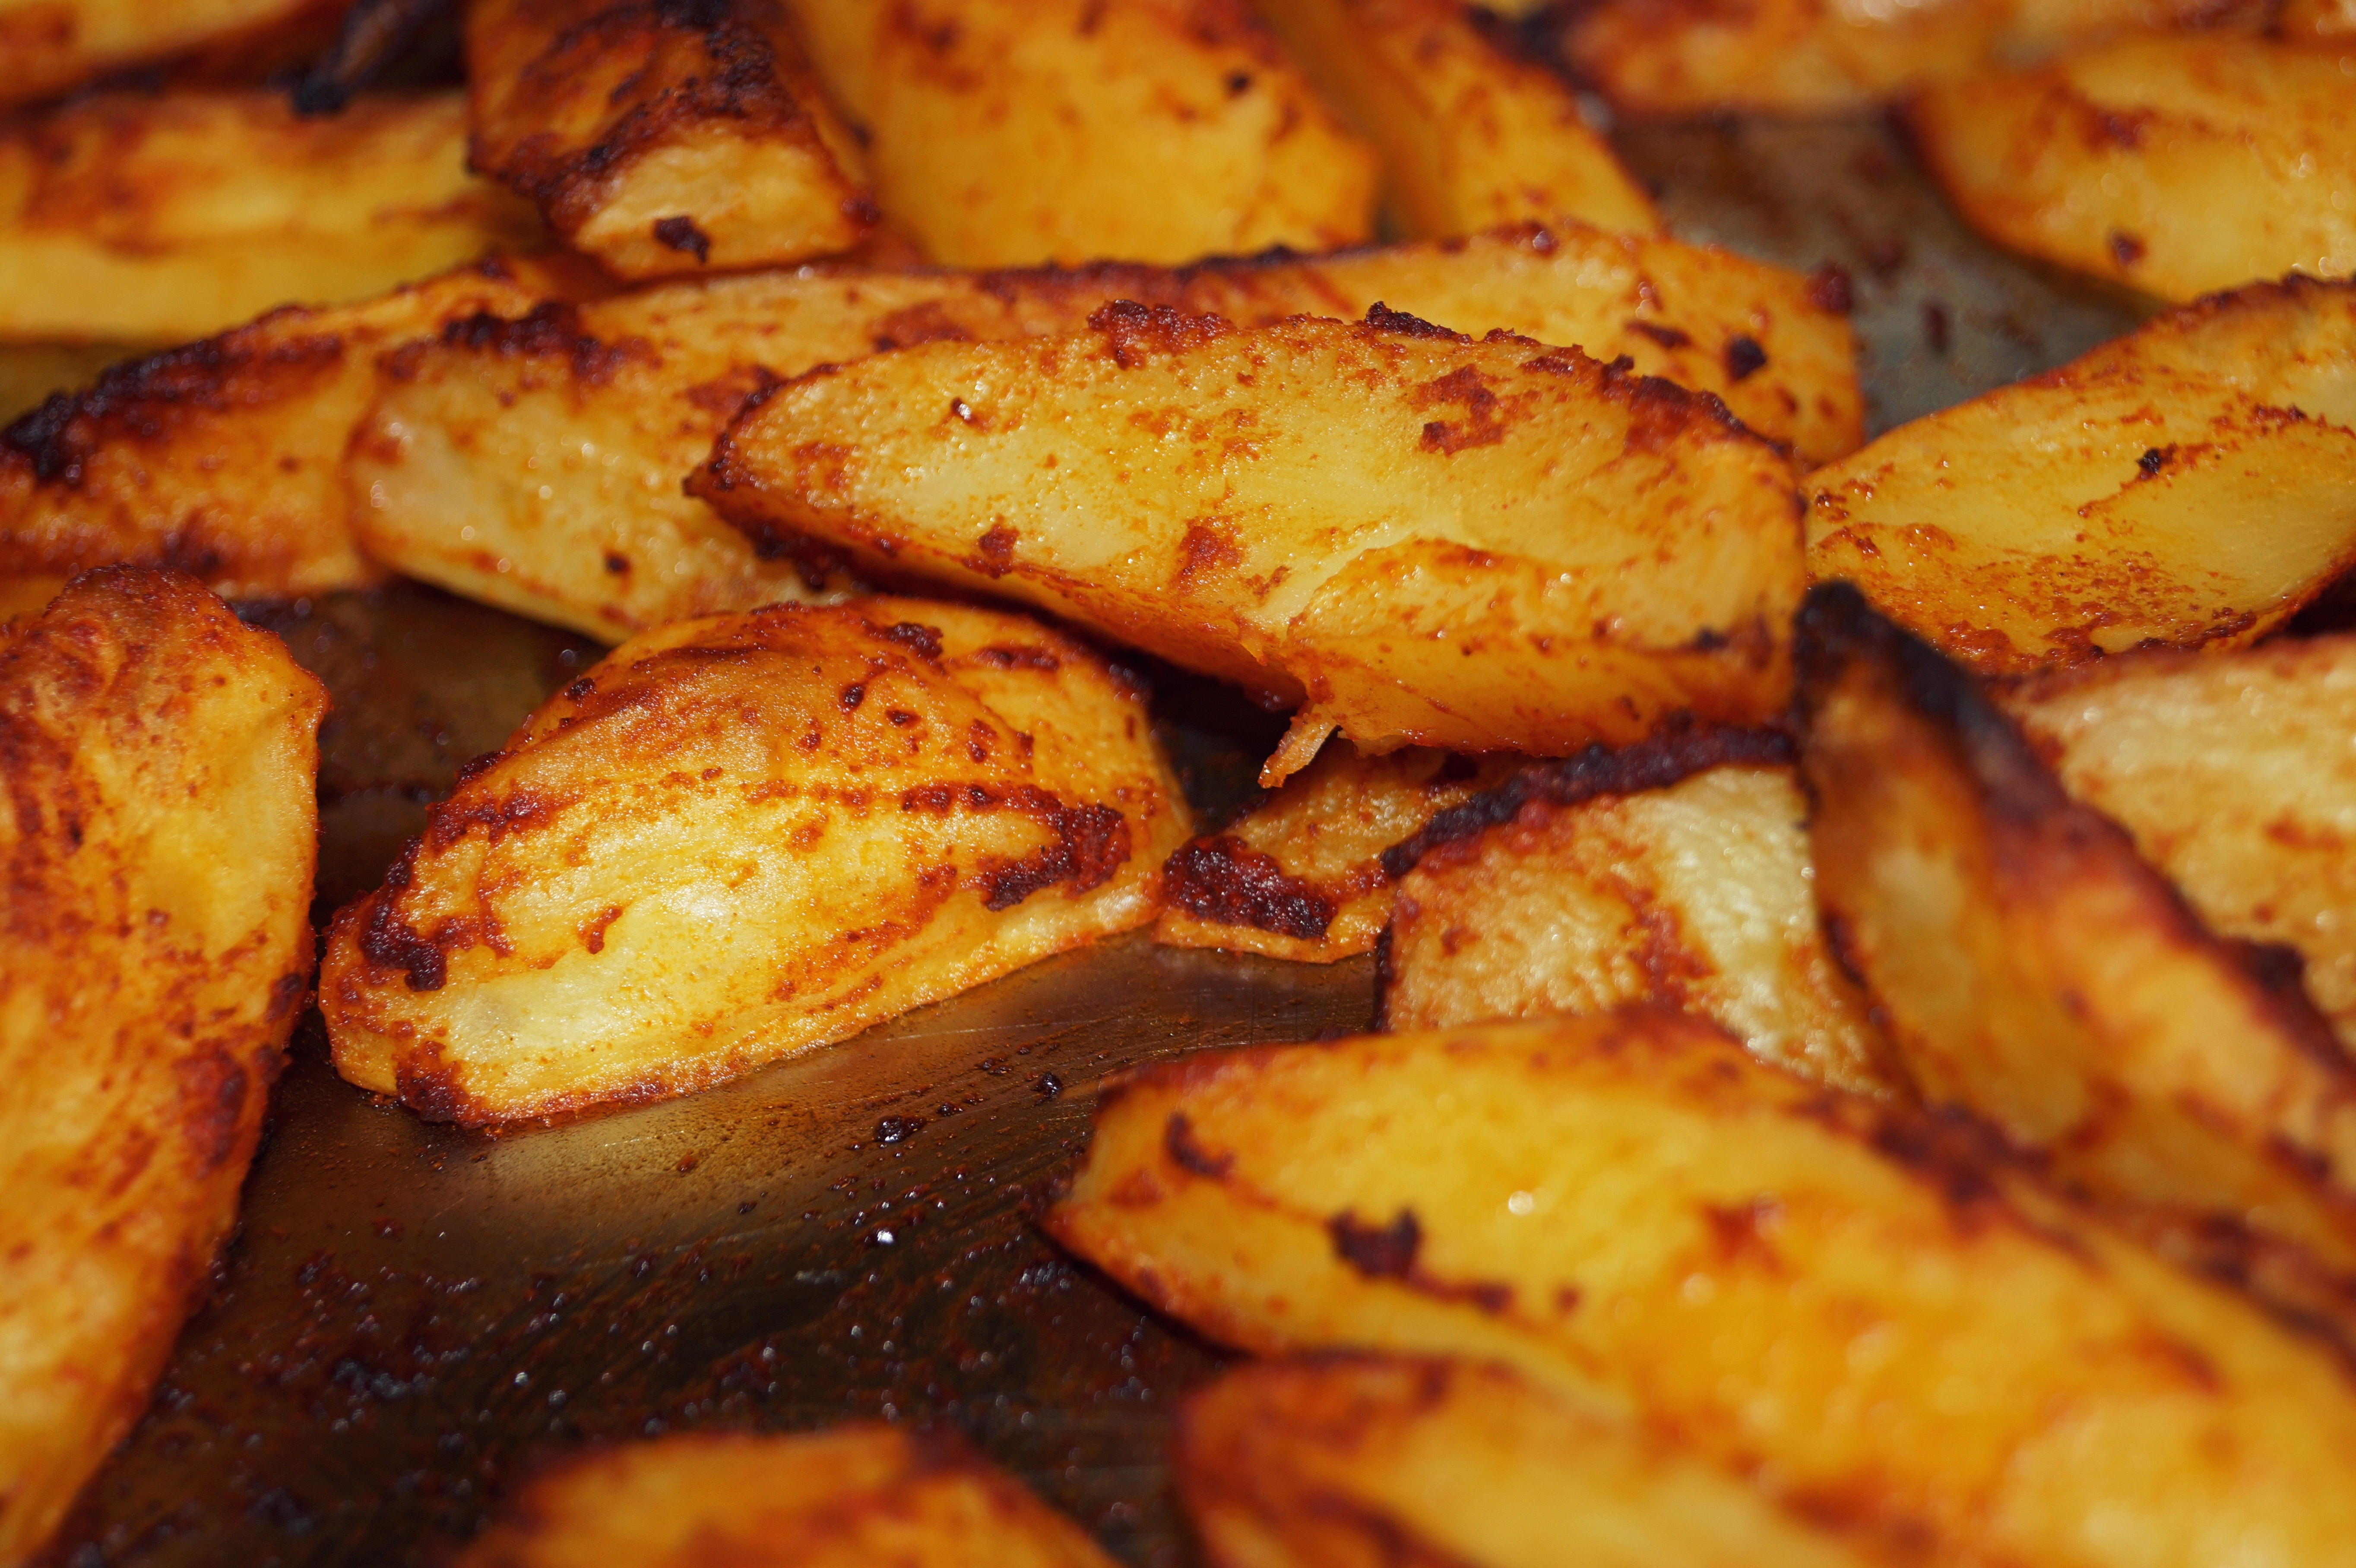 Christmas food guide recommends only ONE or TWO small roast potatoes per festive meal